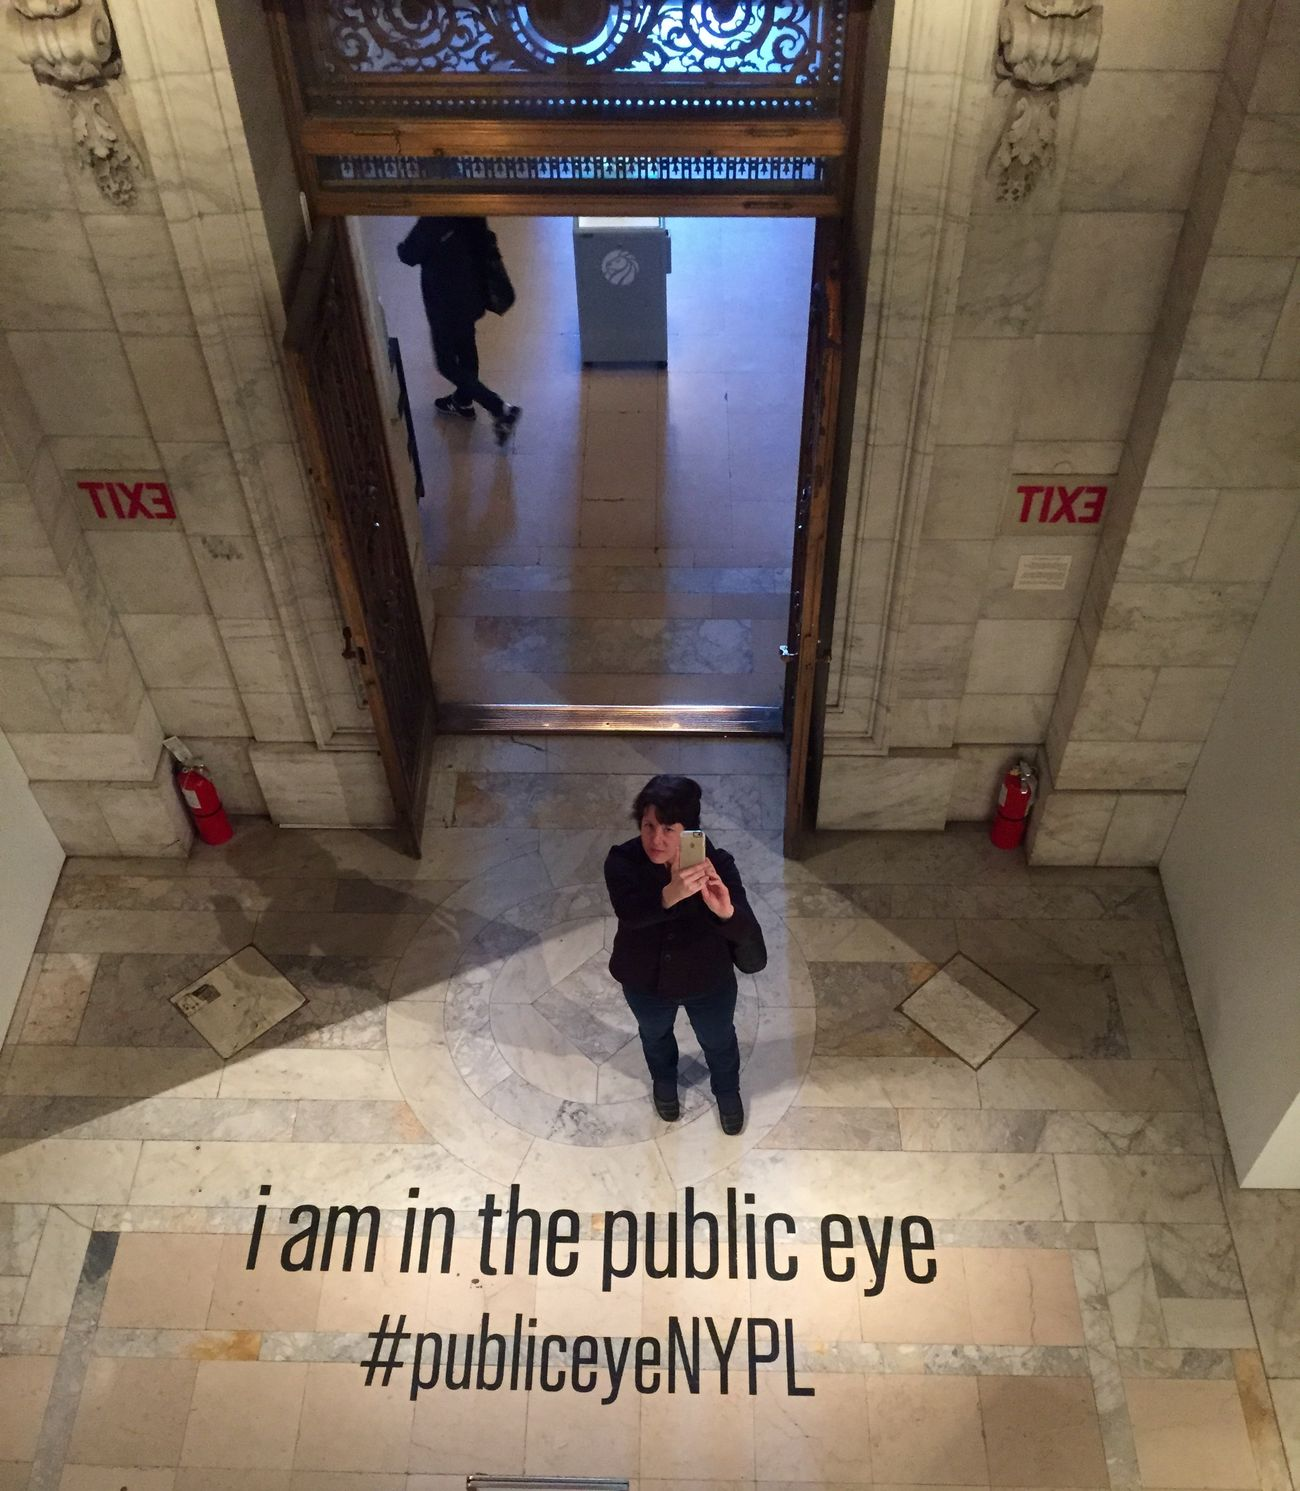 PubliceyeNYPL Nypl The New York Public Library